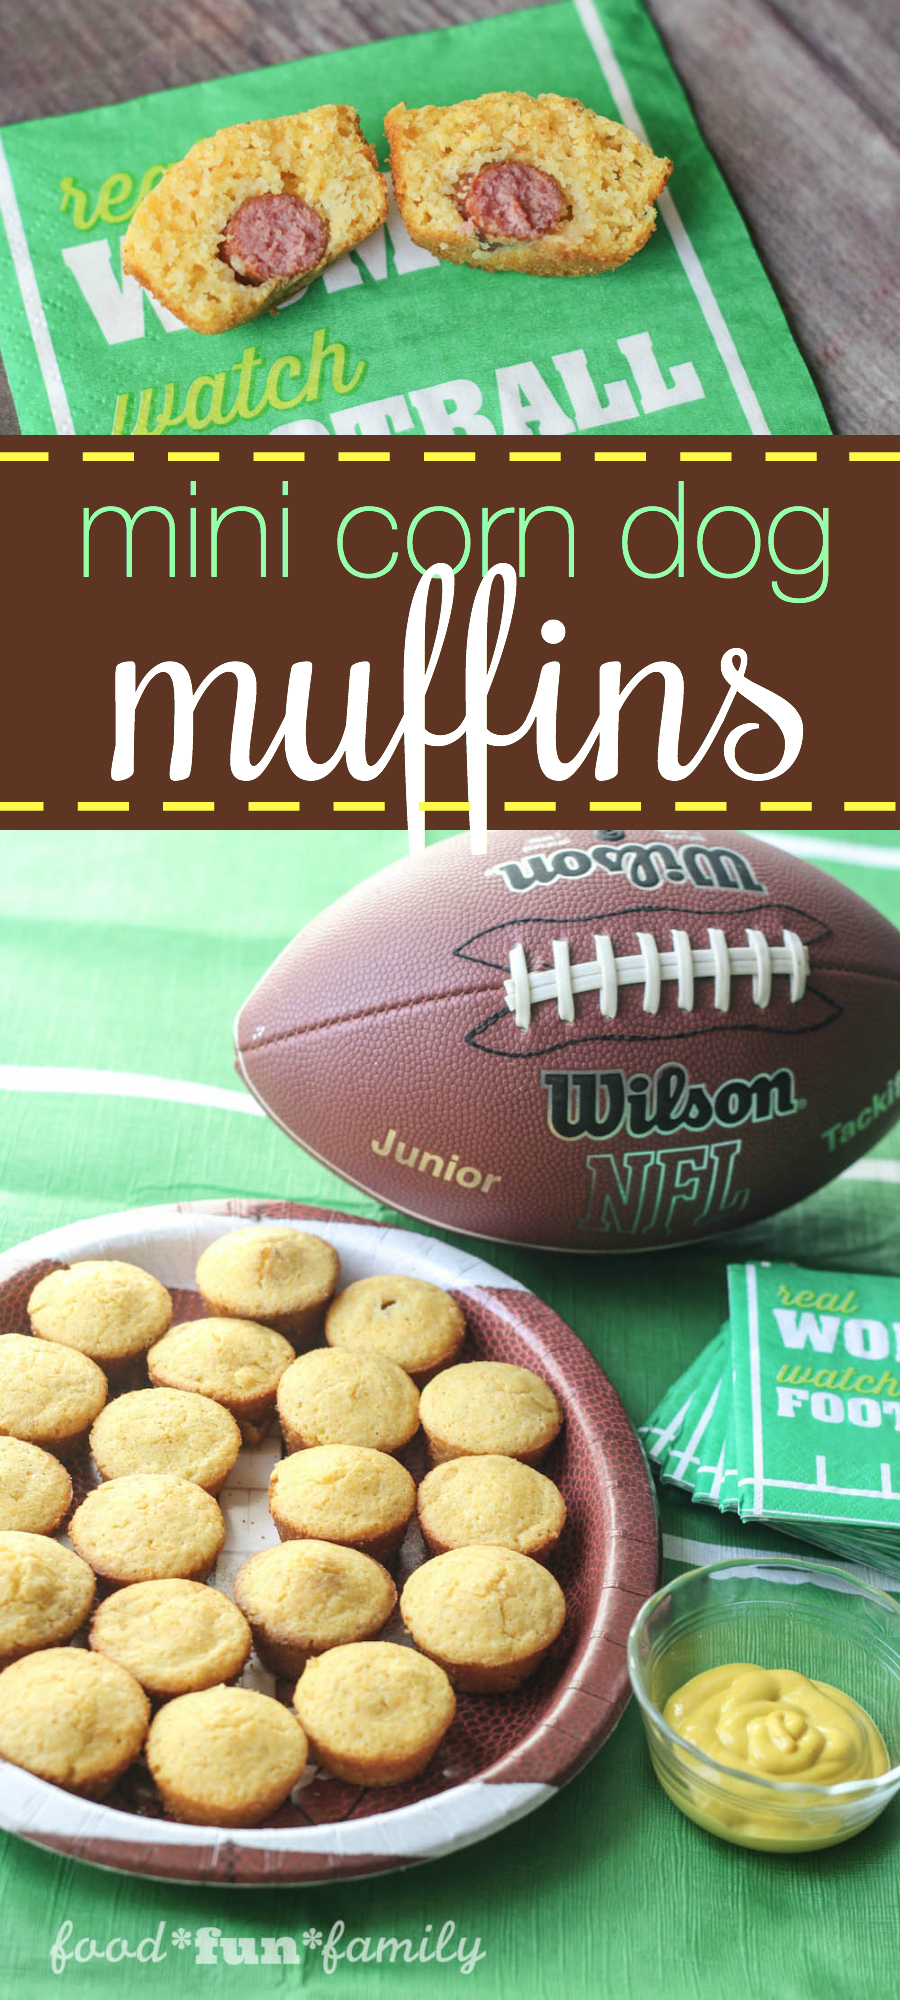 Mini corn dog muffins recipe - perfect party food appetizer or dinner on-the-go!